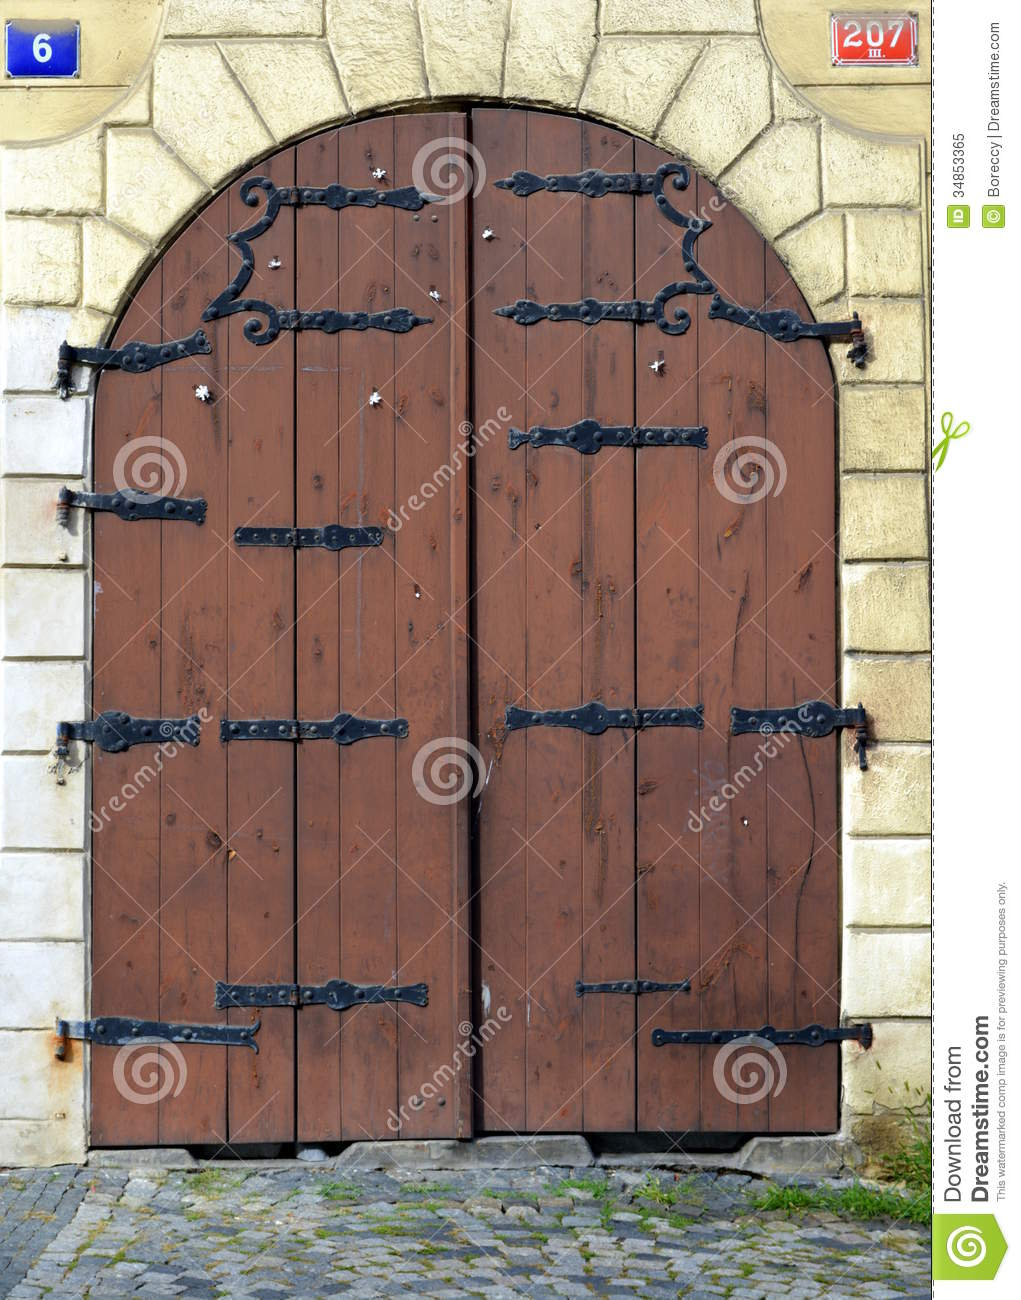 Genial Old Wood And Metal Iron Closed Door, Prague